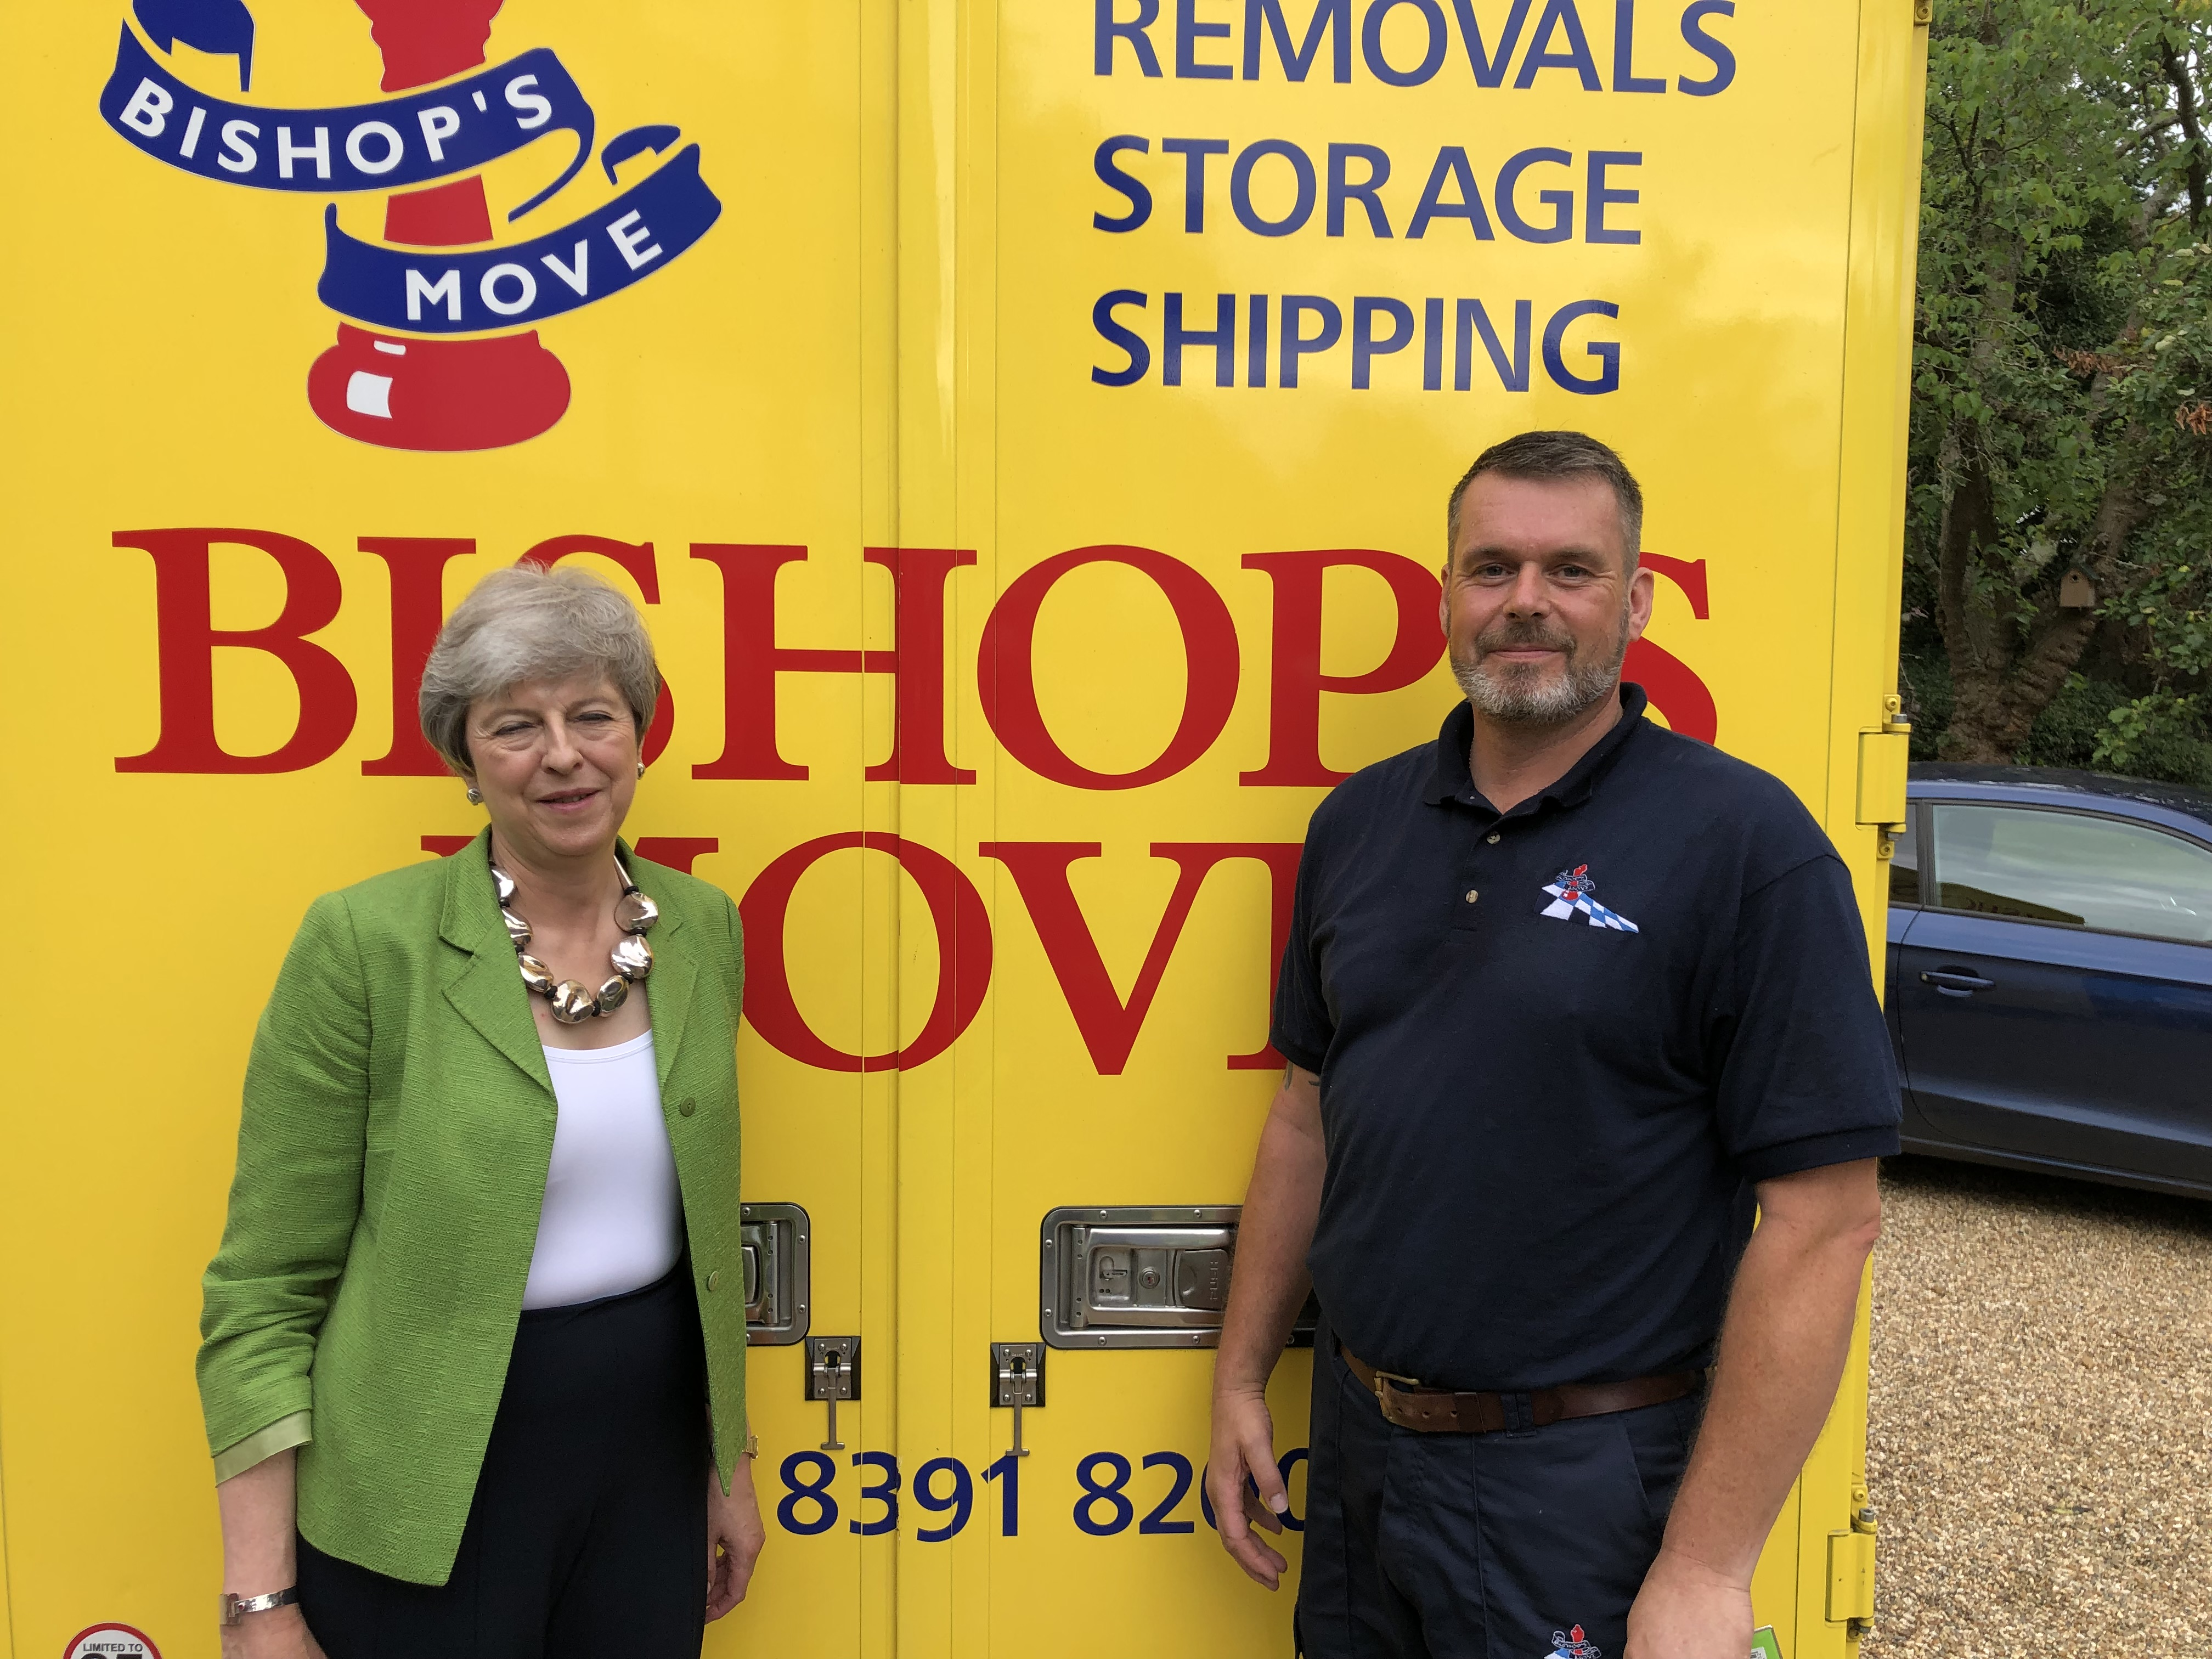 Bishop's foreman Mark Allen with Theresa May